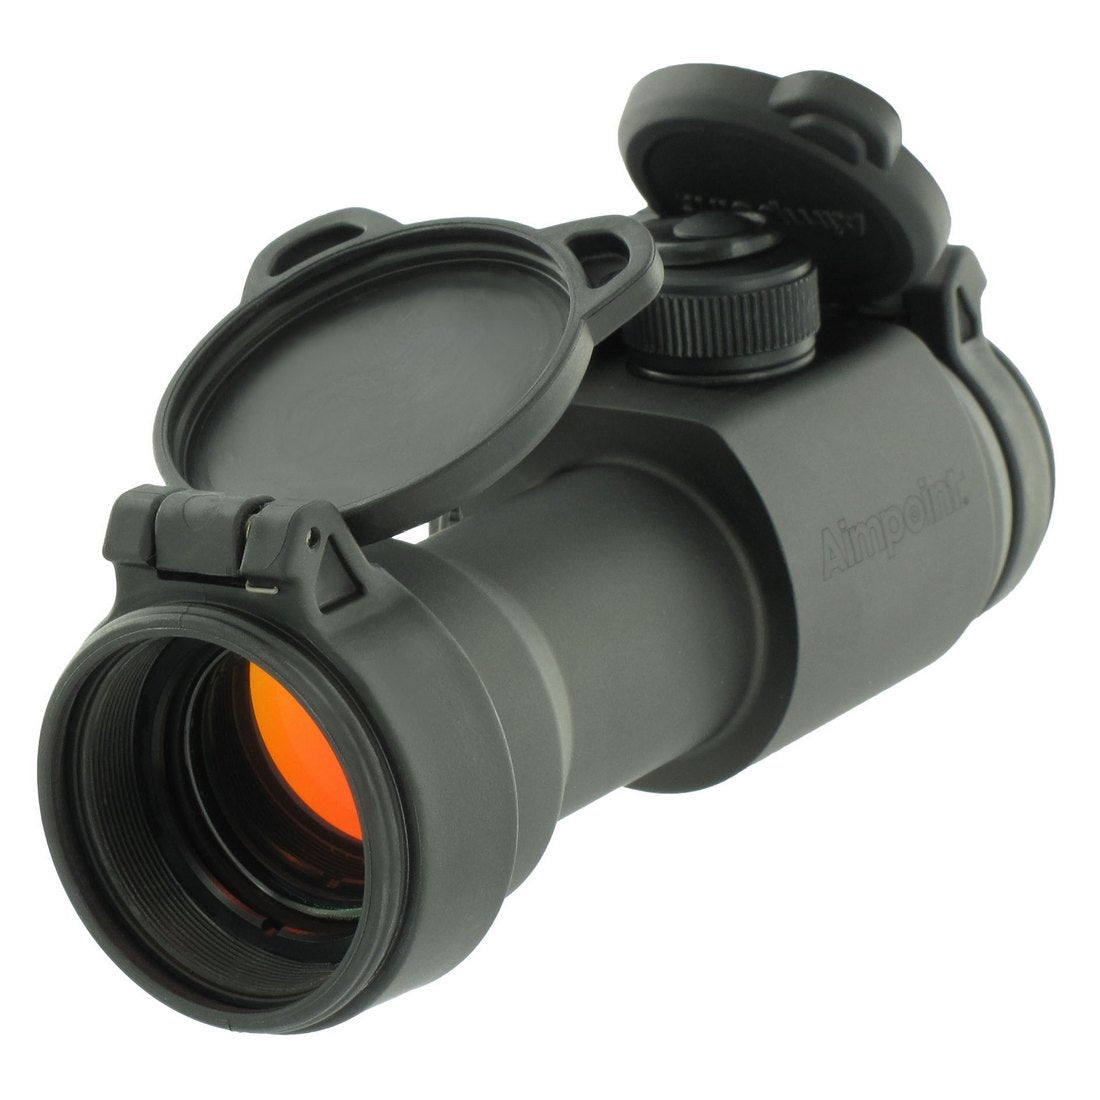 Aimpoint 11405 COMPML3 Sight - Security Pro USA